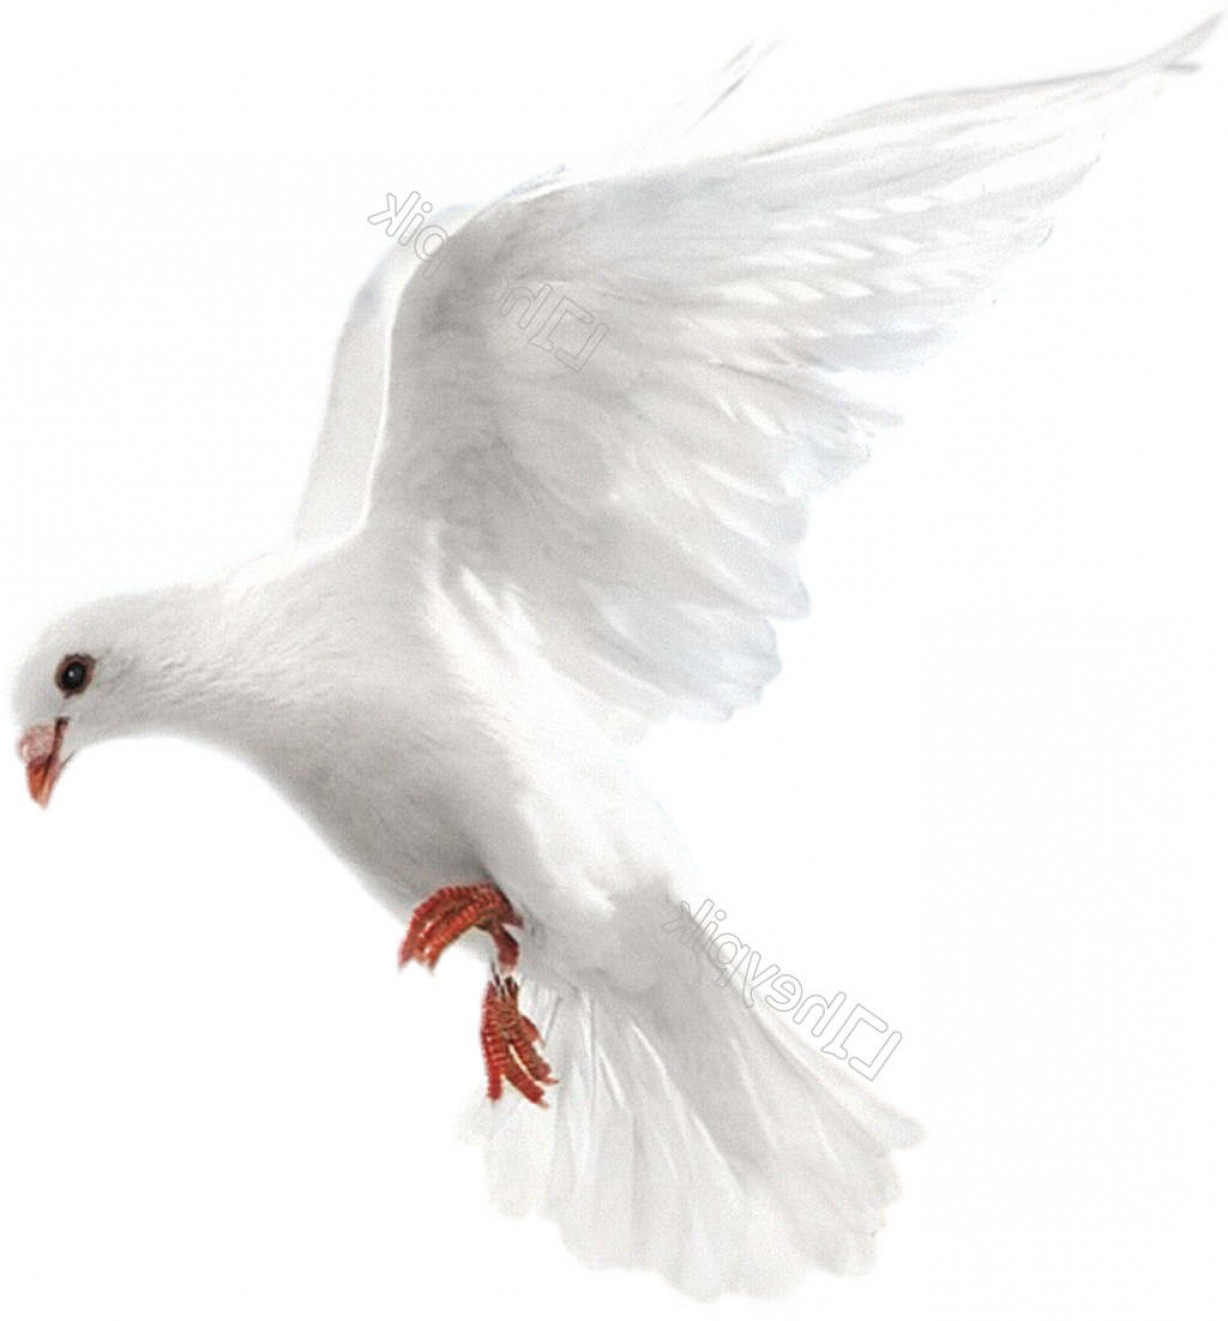 Vector Wedding Doves 2: White Dove Of White Dove In The Air